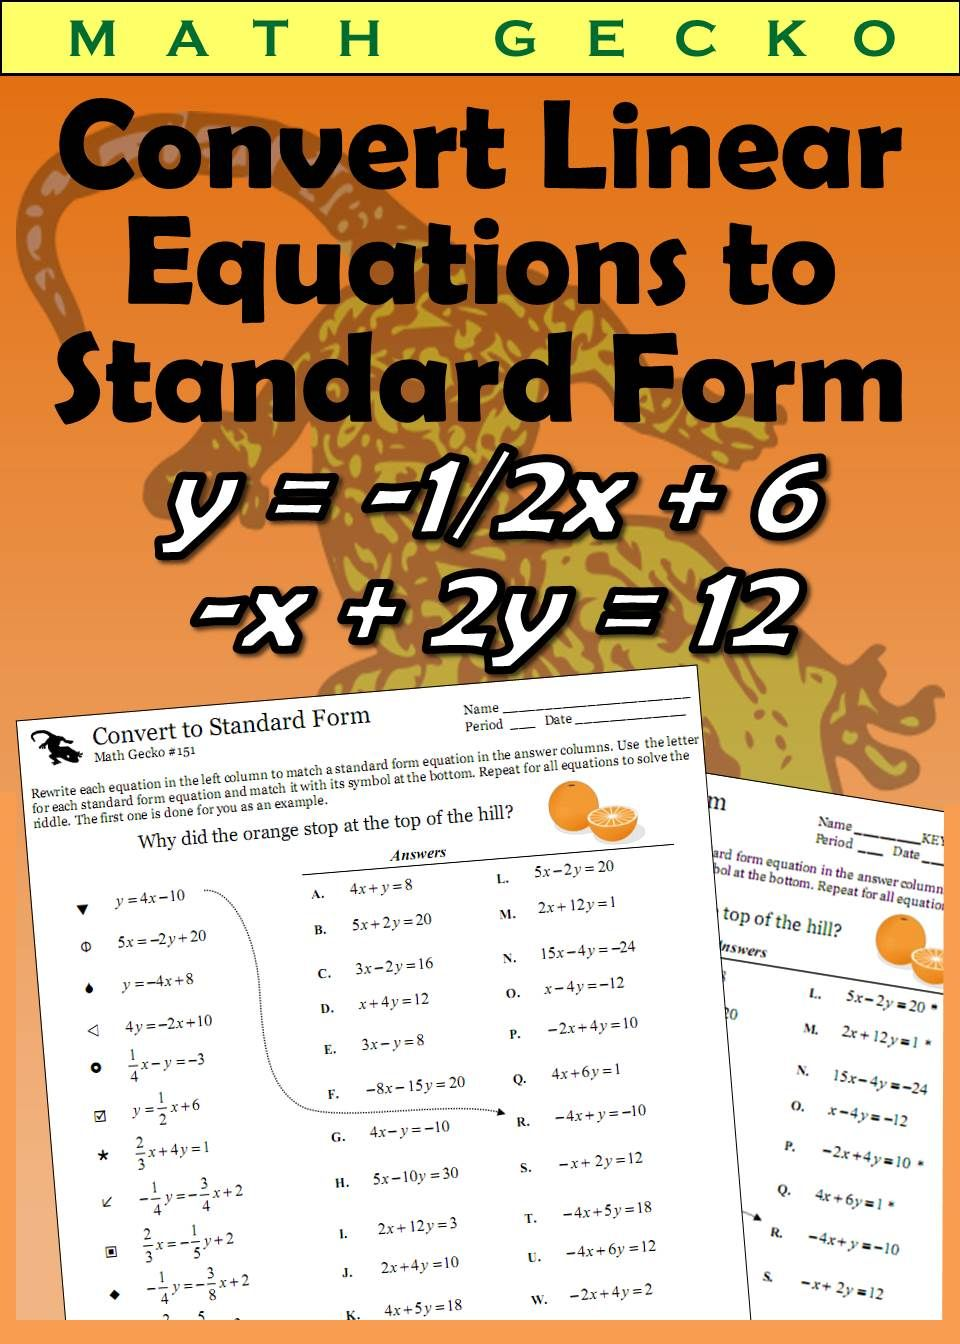 151 Convert Linear Equations To Standard Form Linear Equations Equations Standard Form